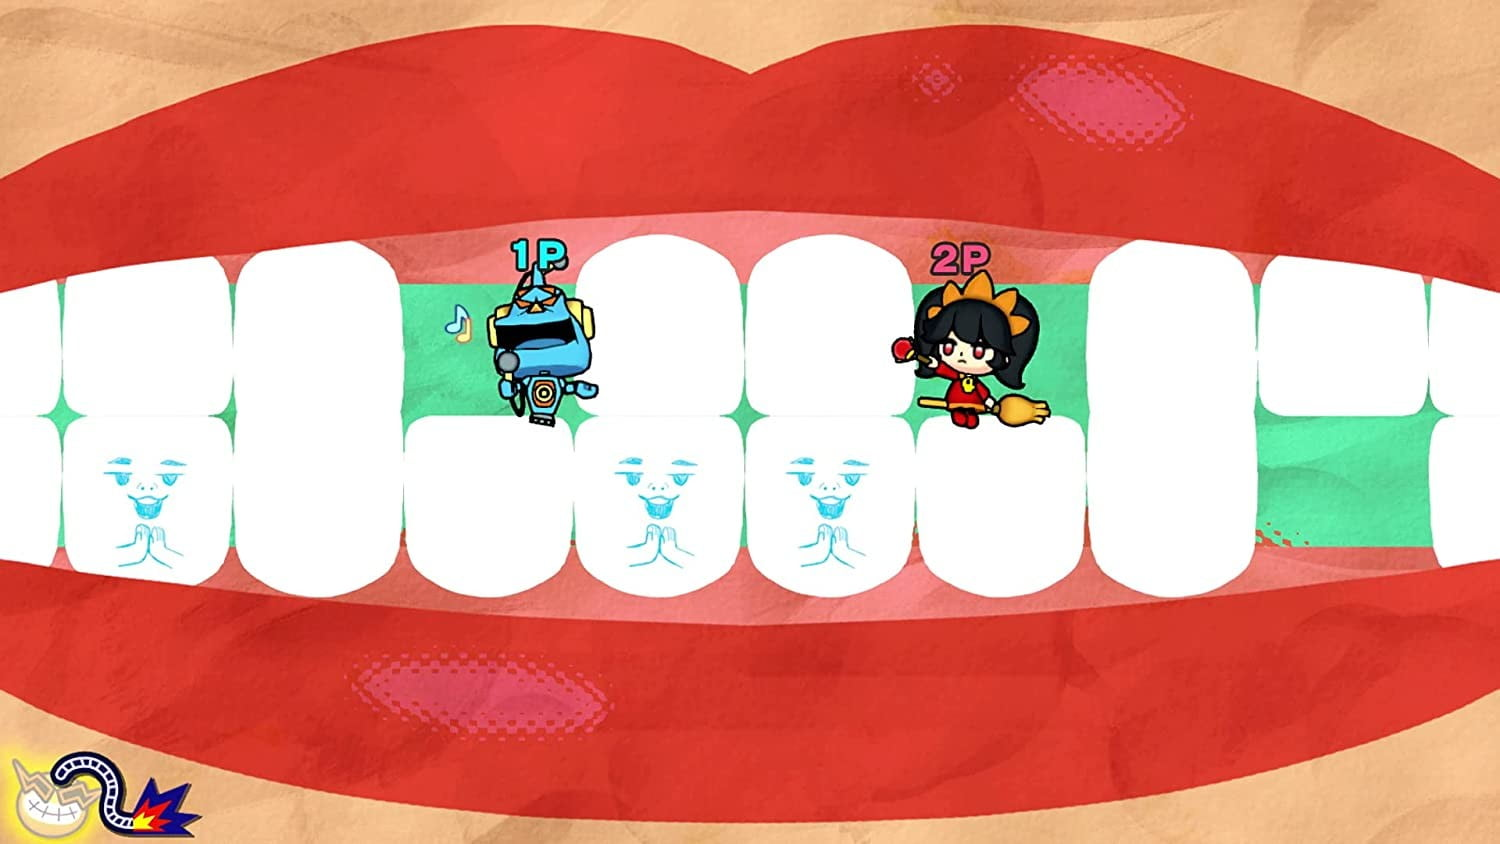 Two Wario characters sit in a mouth in WarioWare: Get It Together!